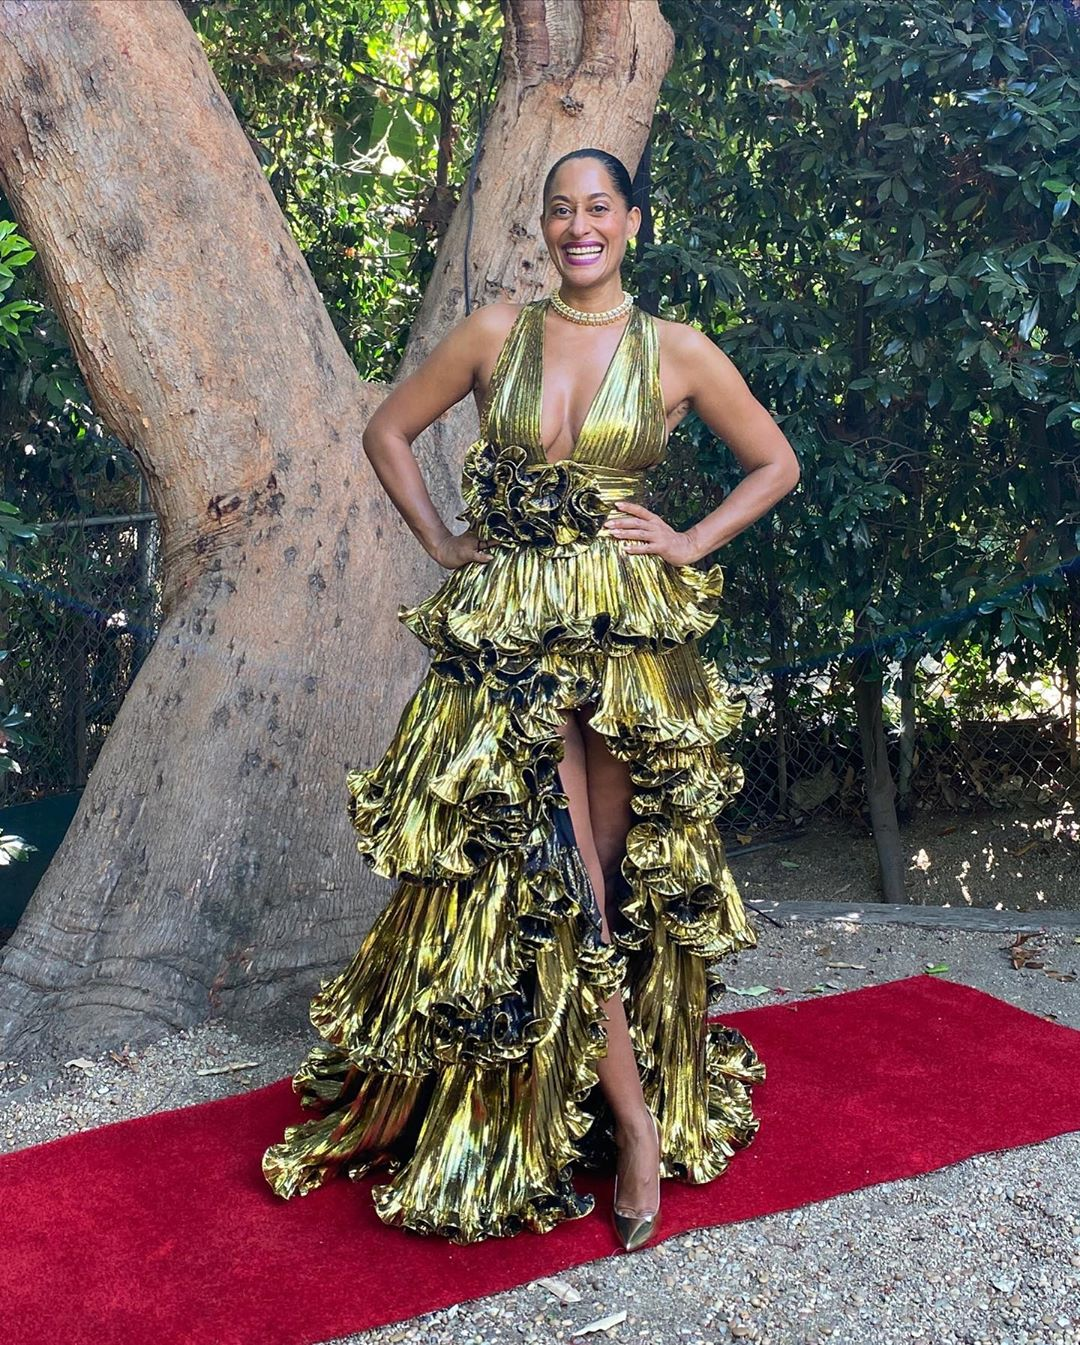 emmy-awards-2020-fashion-best-dressed-winners-tracee-ellis-ross-style-rave